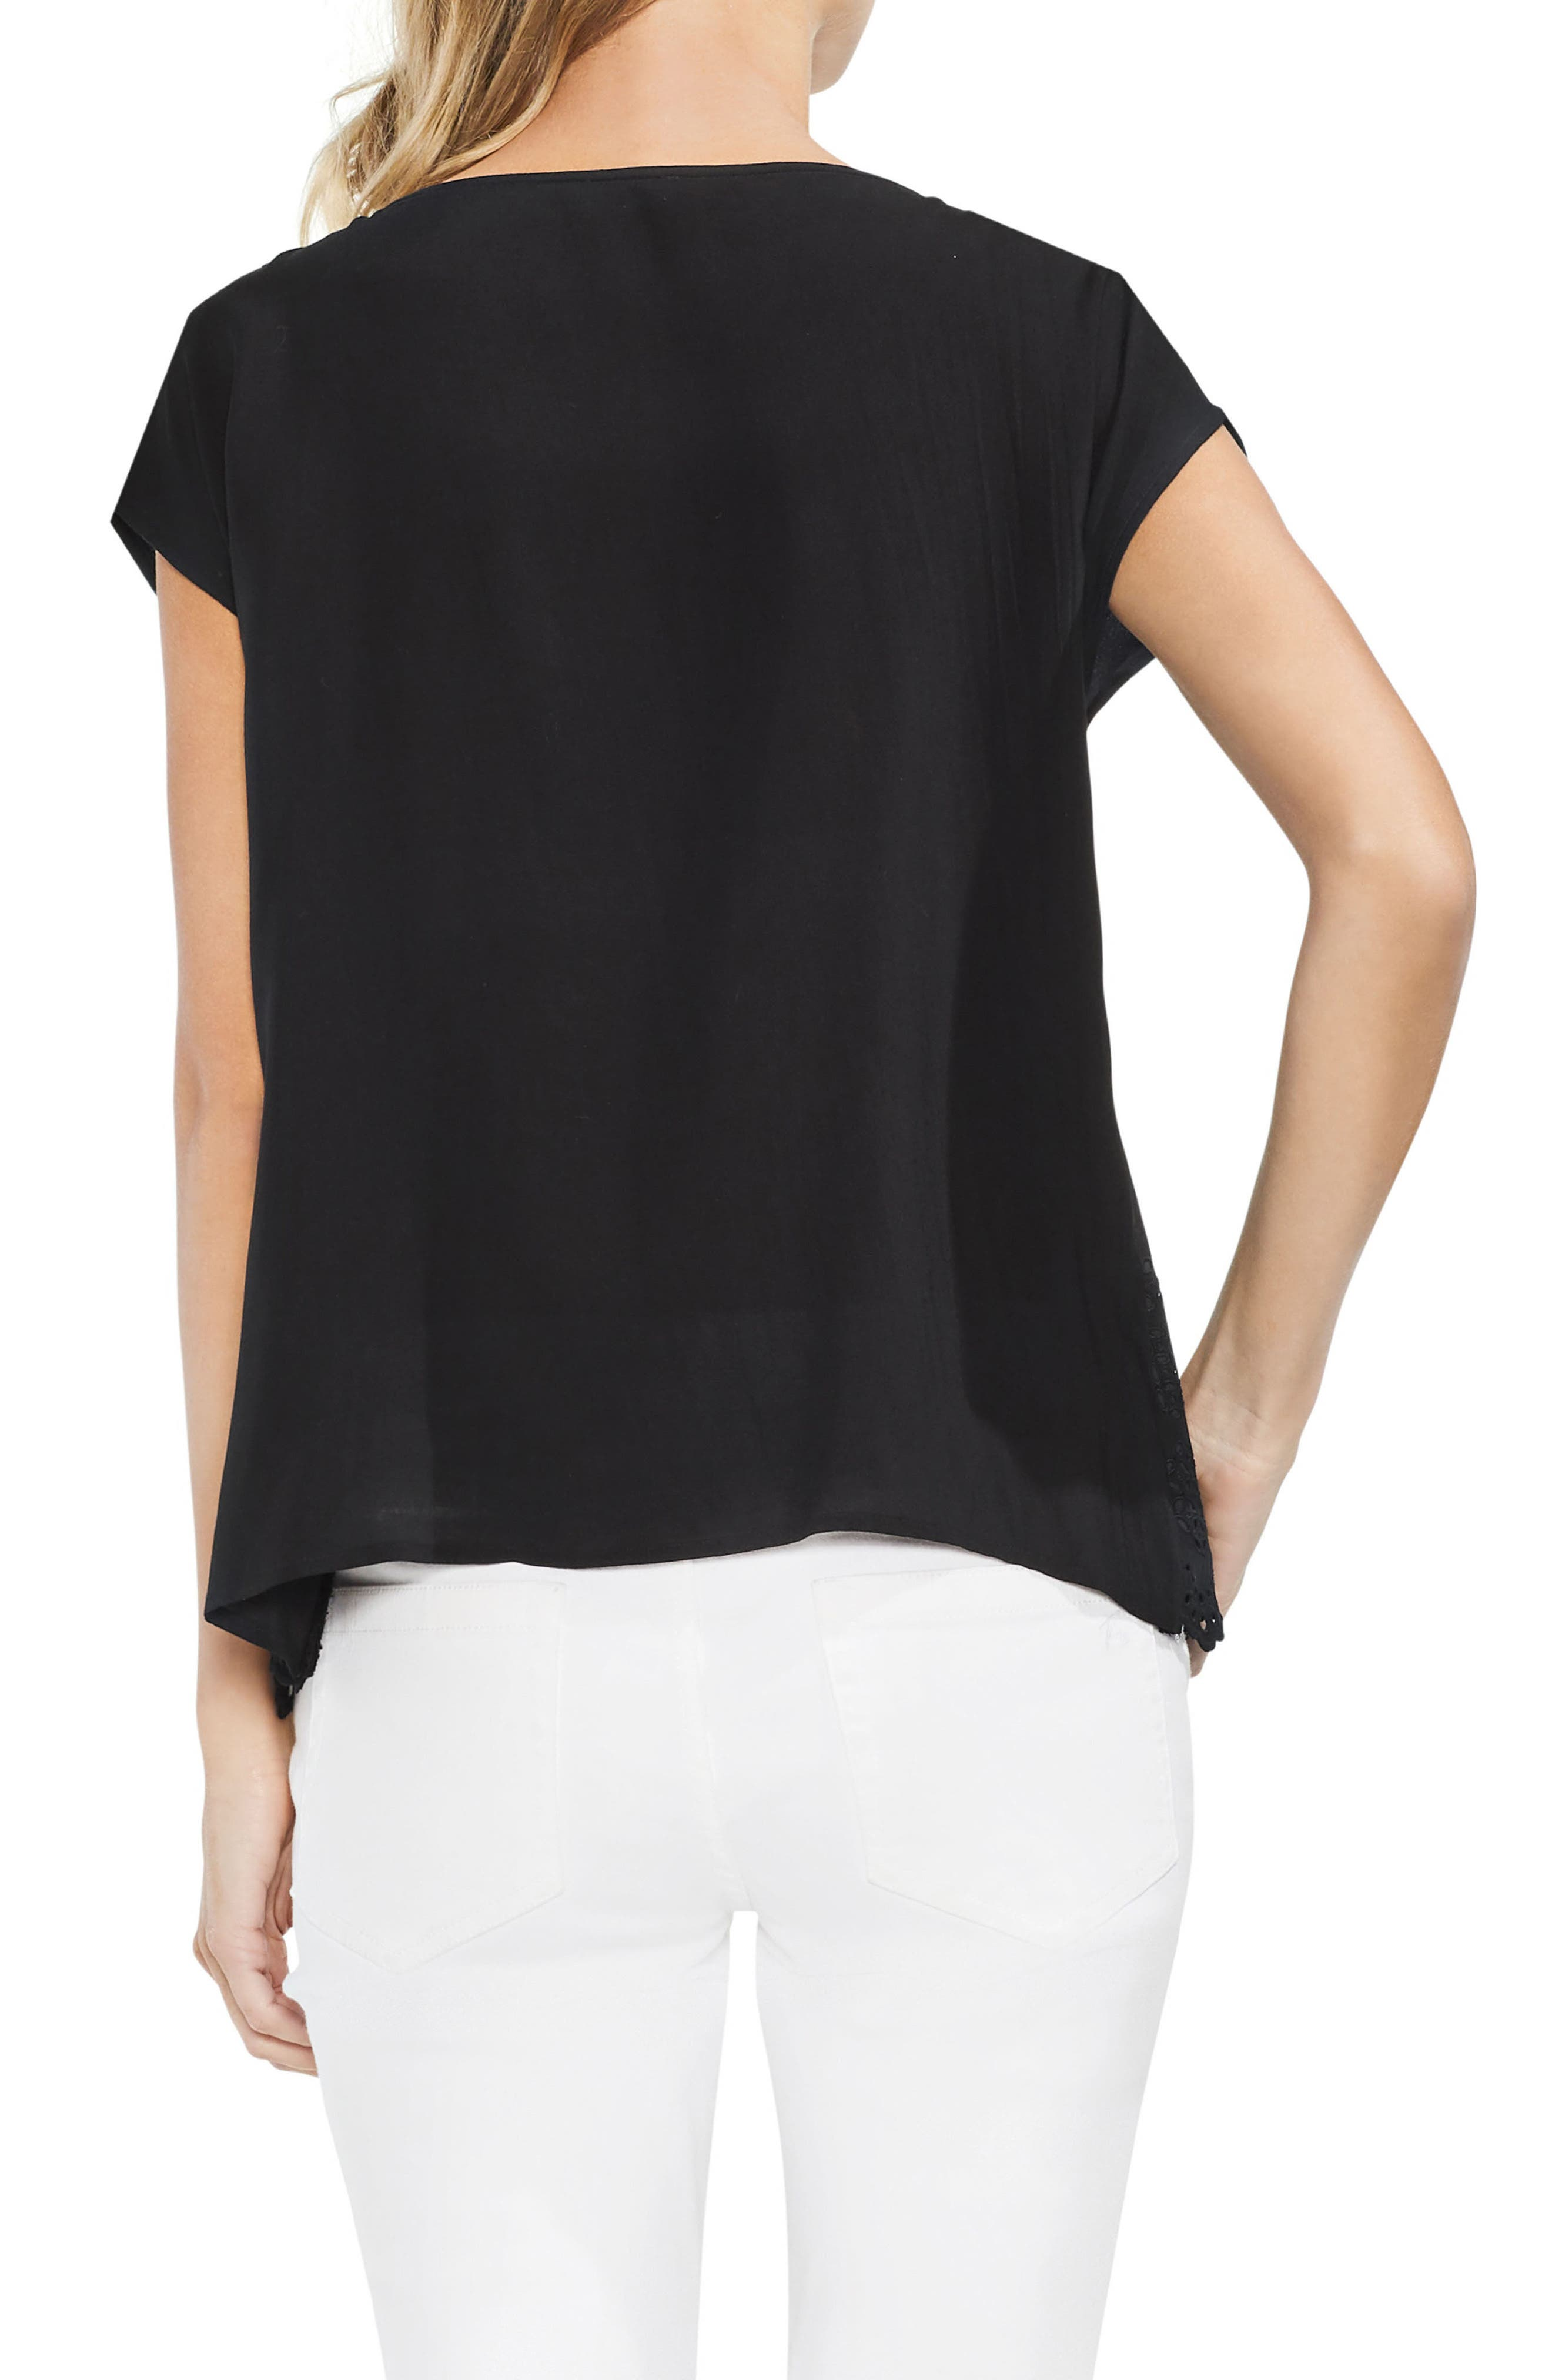 VINCE CAMUTO,                             Scalloped Eyelet Top,                             Alternate thumbnail 2, color,                             001